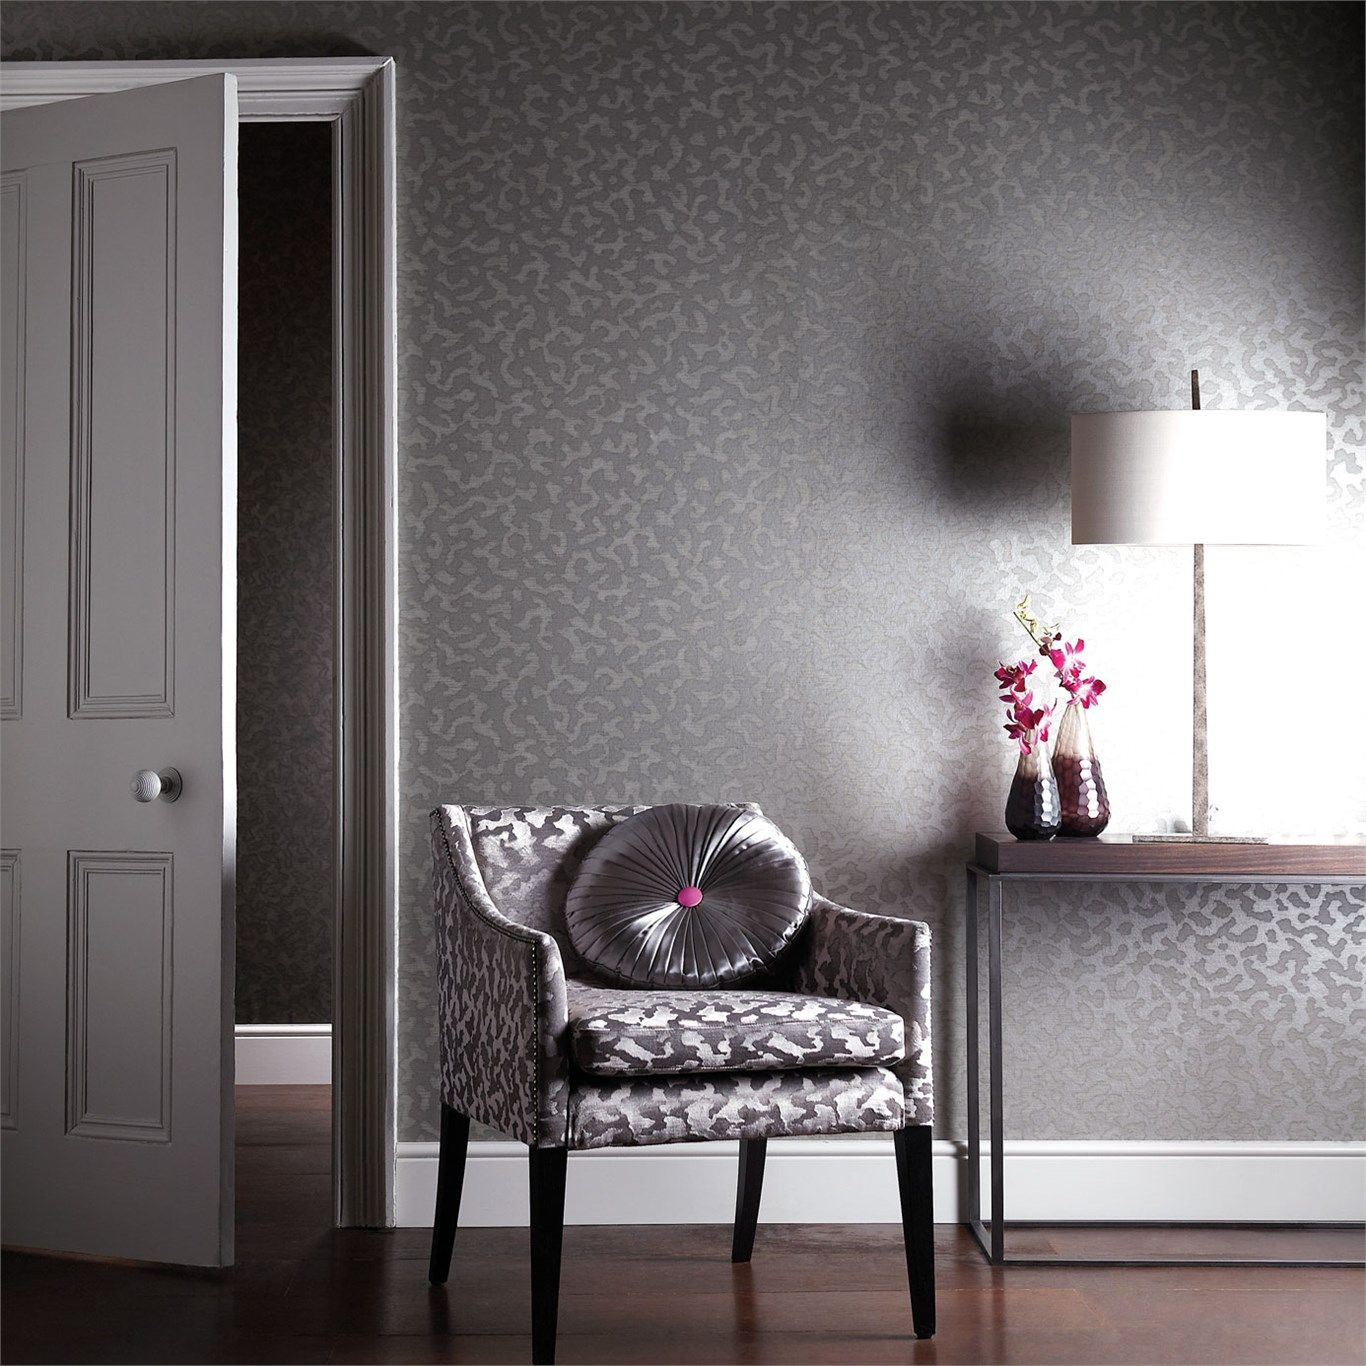 Momentum Vol 1 Wallpaper And Fabric (source Harlequin) Wallpaper Australia  / The Ivory Tower